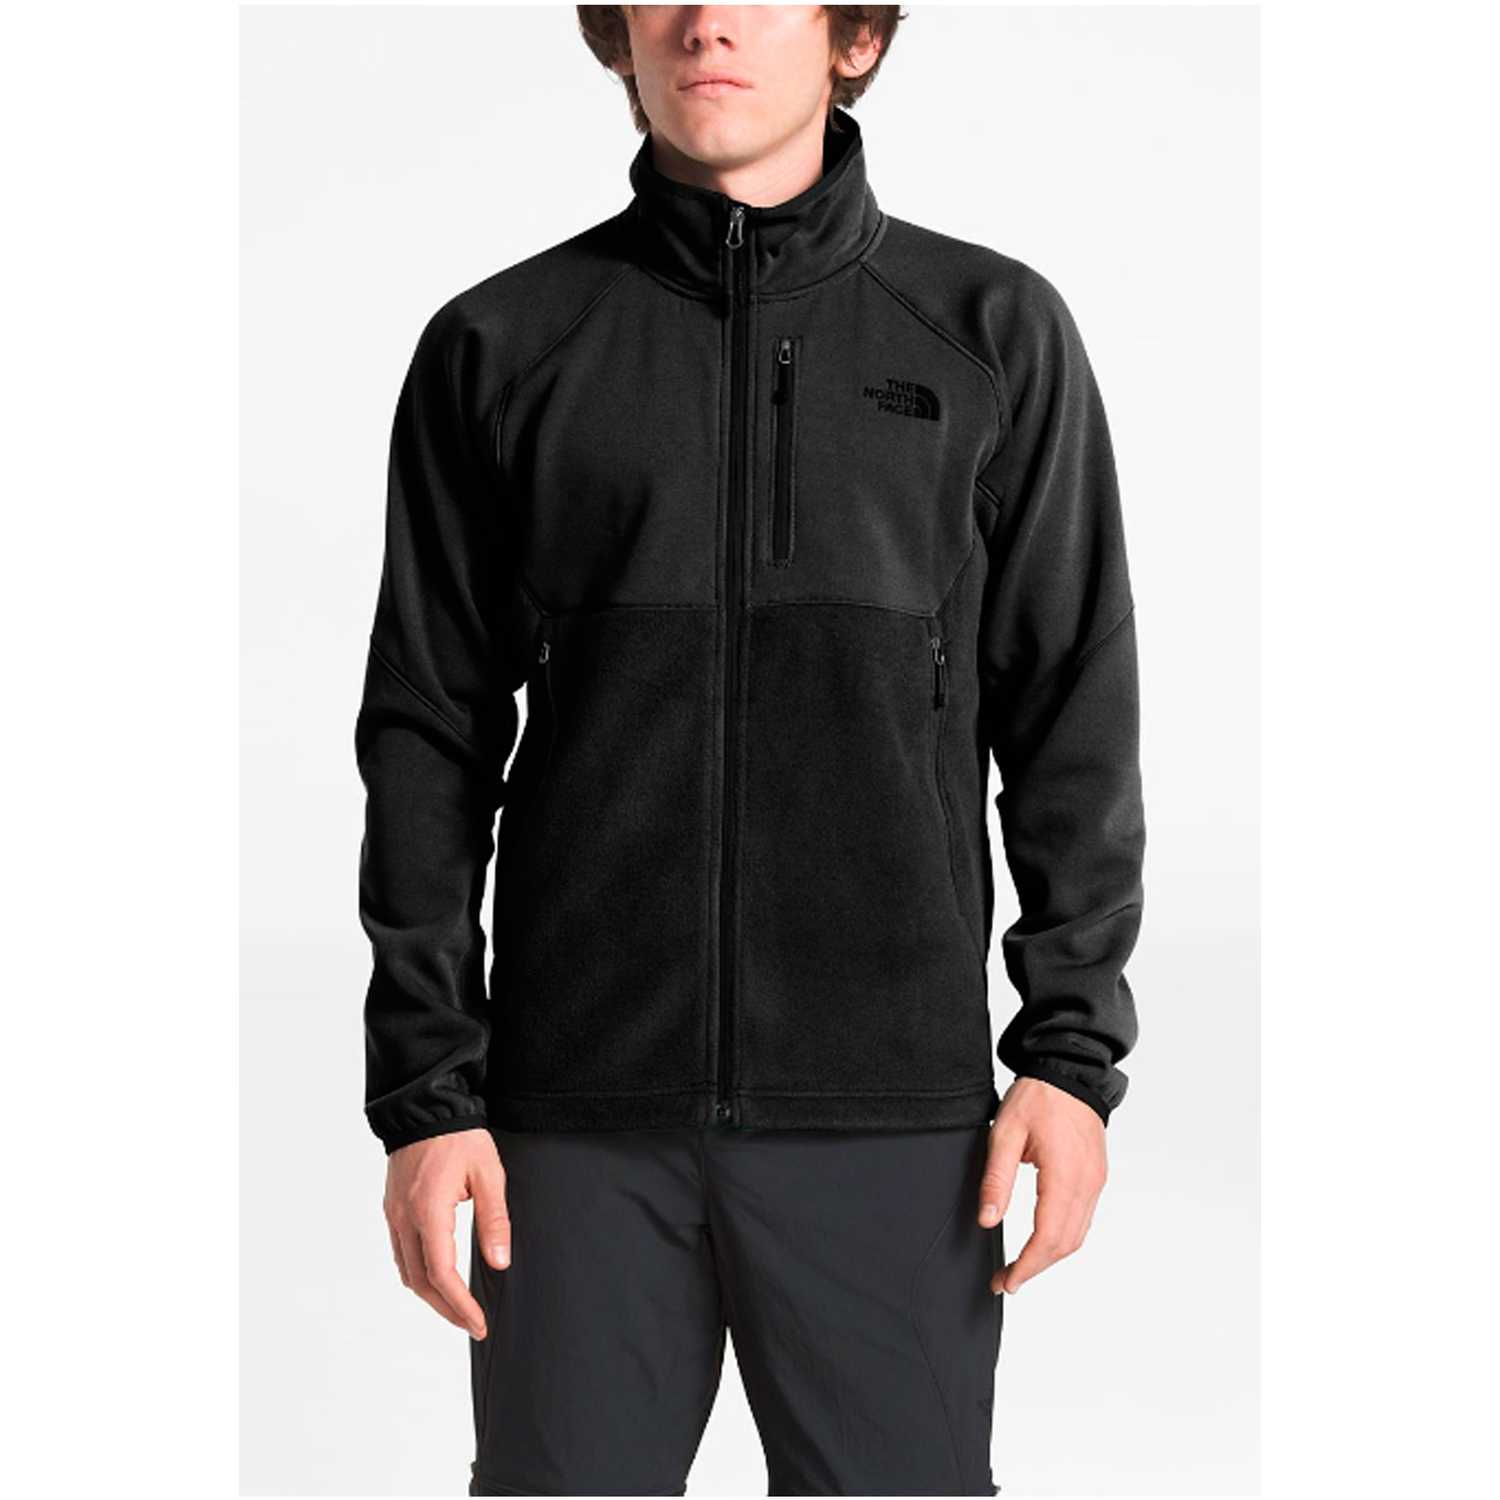 Casaca de Hombre The North Face Negro m tolmiepeak hybrid full zip